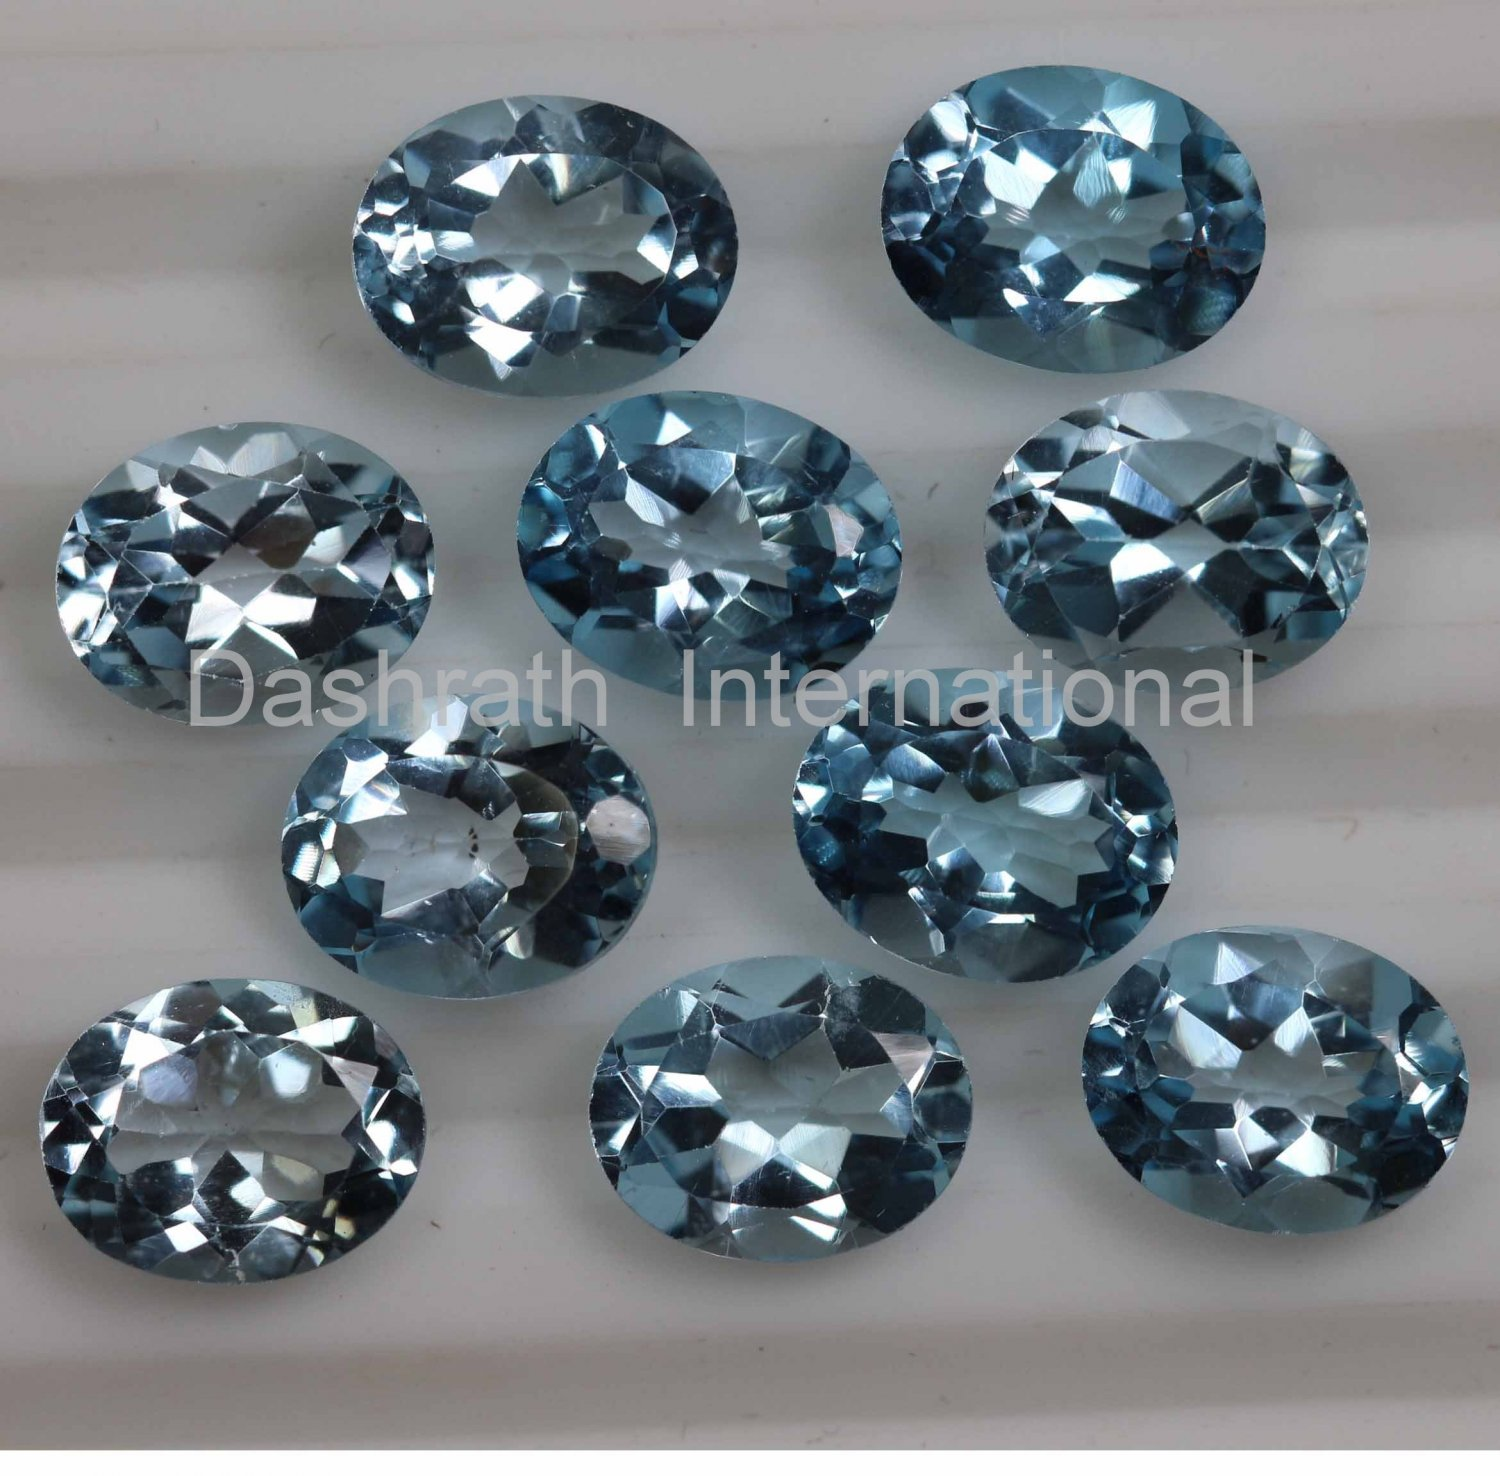 8x6mm  Natural Sky Blue Topaz Faceted Cut Oval  25 Pieces Lot  Top Quality Loose Gemstone